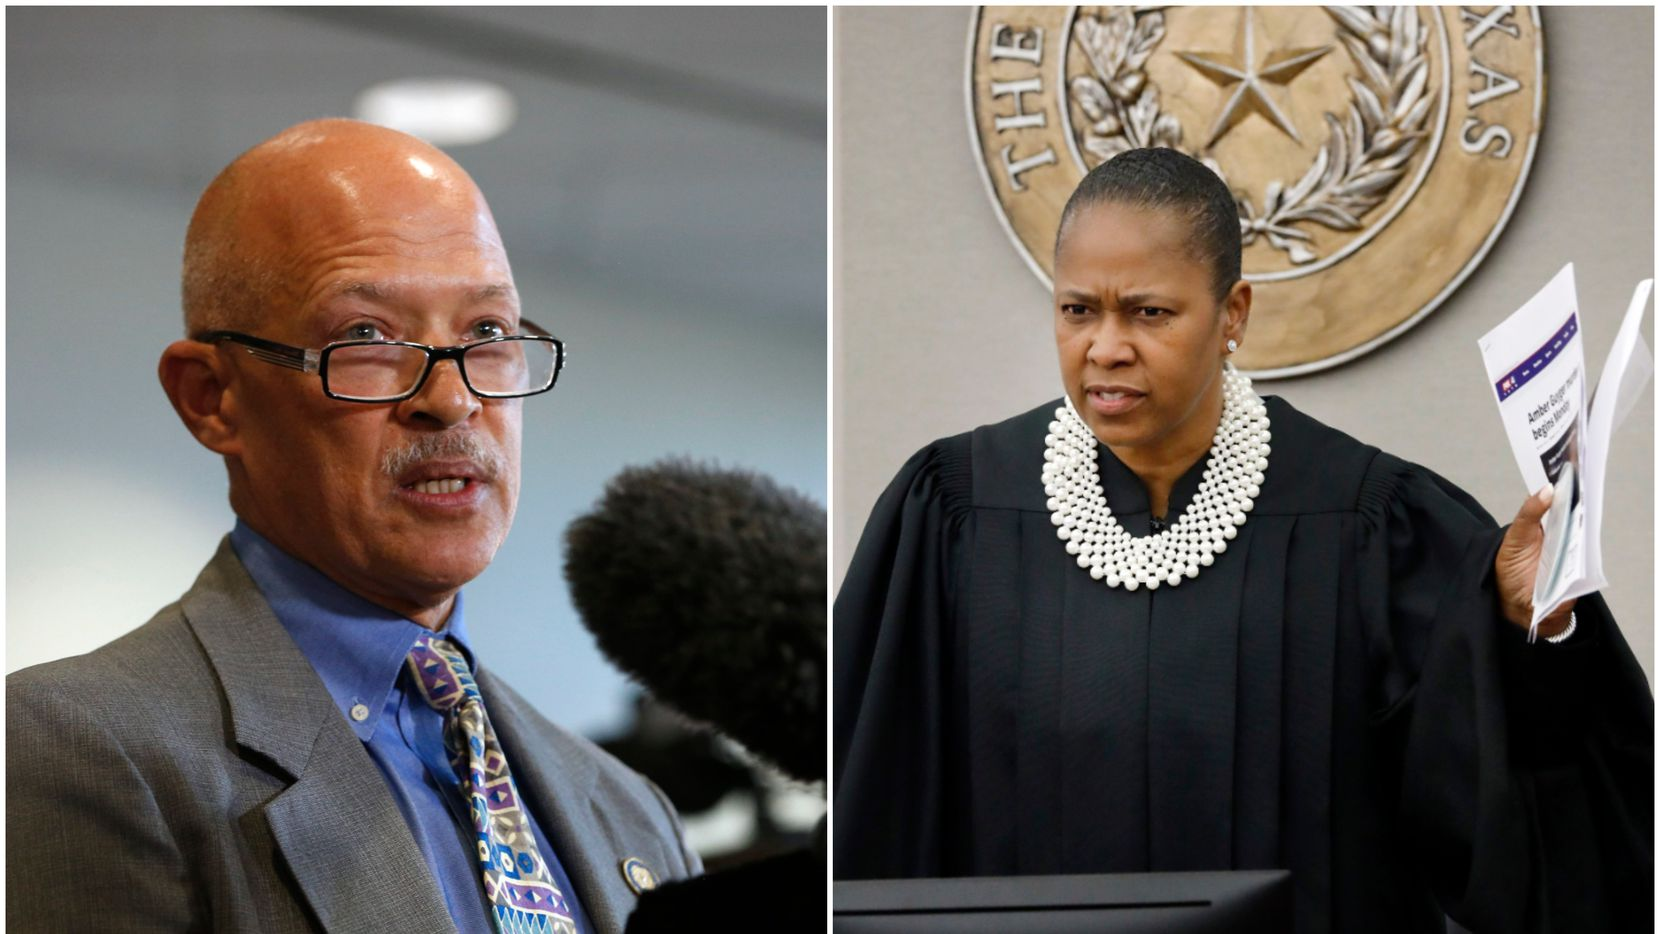 On the left, Dallas County District Attorney John Creuzot speaks to reporters after Amber Guyger's 10-year prison sentence. On the right, state District Judge Tammy Kemp is visibly upset to hear of an interview Creuzot did that aired on the eve of the Guyer trial.